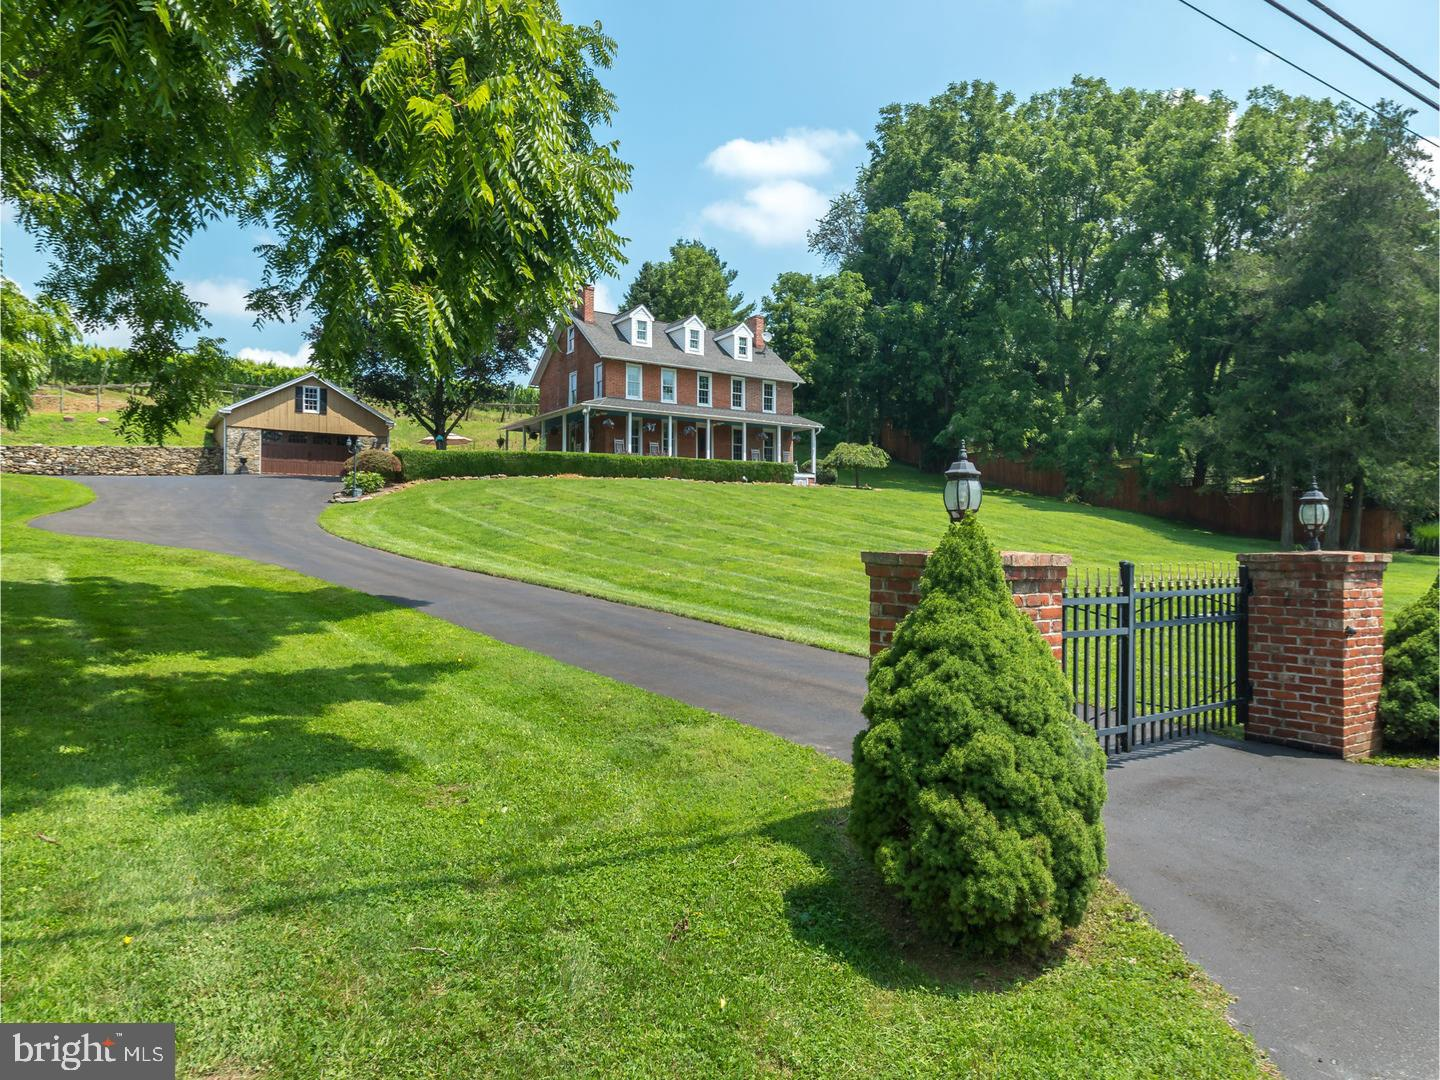 Make your dreams a reality!  Have you ever dreamed of owning a historic home with an income generating farm, even better a vineyard? Now your dreams can be a reality. Nestled in the sloping hills of southwestern Chester County is a beautifully restored 1840's brick federal style farmhouse with wraparound porch, originally a large dairy farm which produced thousands of pounds of butter. The home boasts hardwood floors throughout, 4 fireplaces, large chef kitchen with fireplace, decorative iron-work and slate tile, fully finished basement with full bath. Low maintenance stamped concrete patio, ornamental fish pond, beautifully landscaped, 4 stall bank barn and fenced pastures. Grid tied solar electric system produces almost 40kW of clean electricity supplying over 100 percent of the property's electric needs. Cottage with full summer kitchen and running water sits amongst 10 acres of vinifera wine grapes and with the moderate climate and rolling terrain it provides some of the best growing conditions on the east coast. Two wells for water and invisible dog fencing.